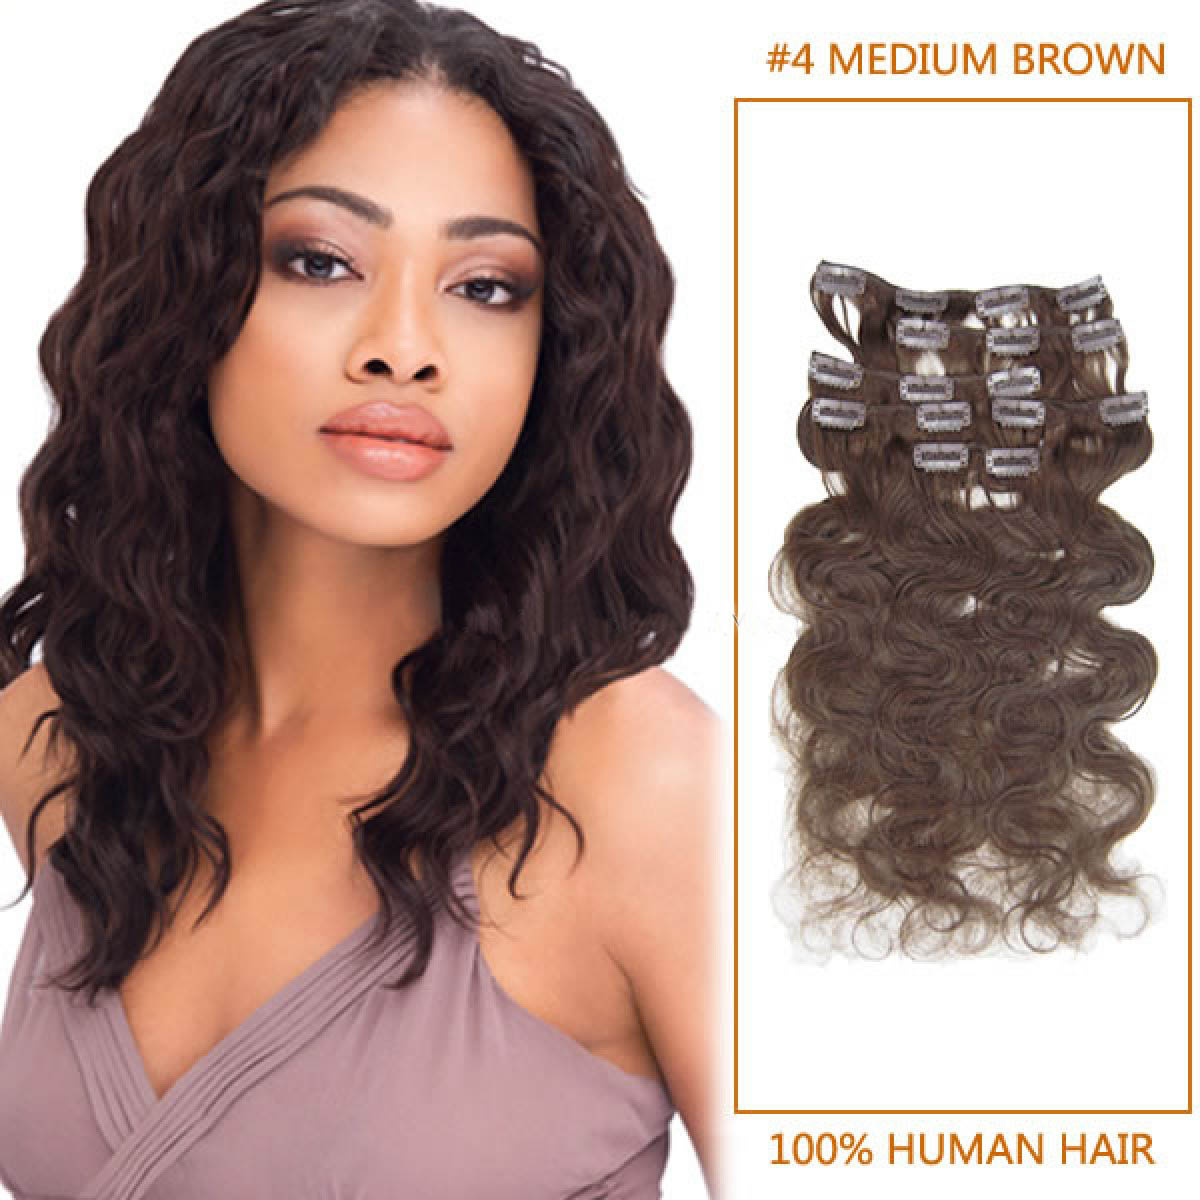 20 Inch 4 Medium Brown Wavy Clip In Remy Human Hair Extensions 7pcs